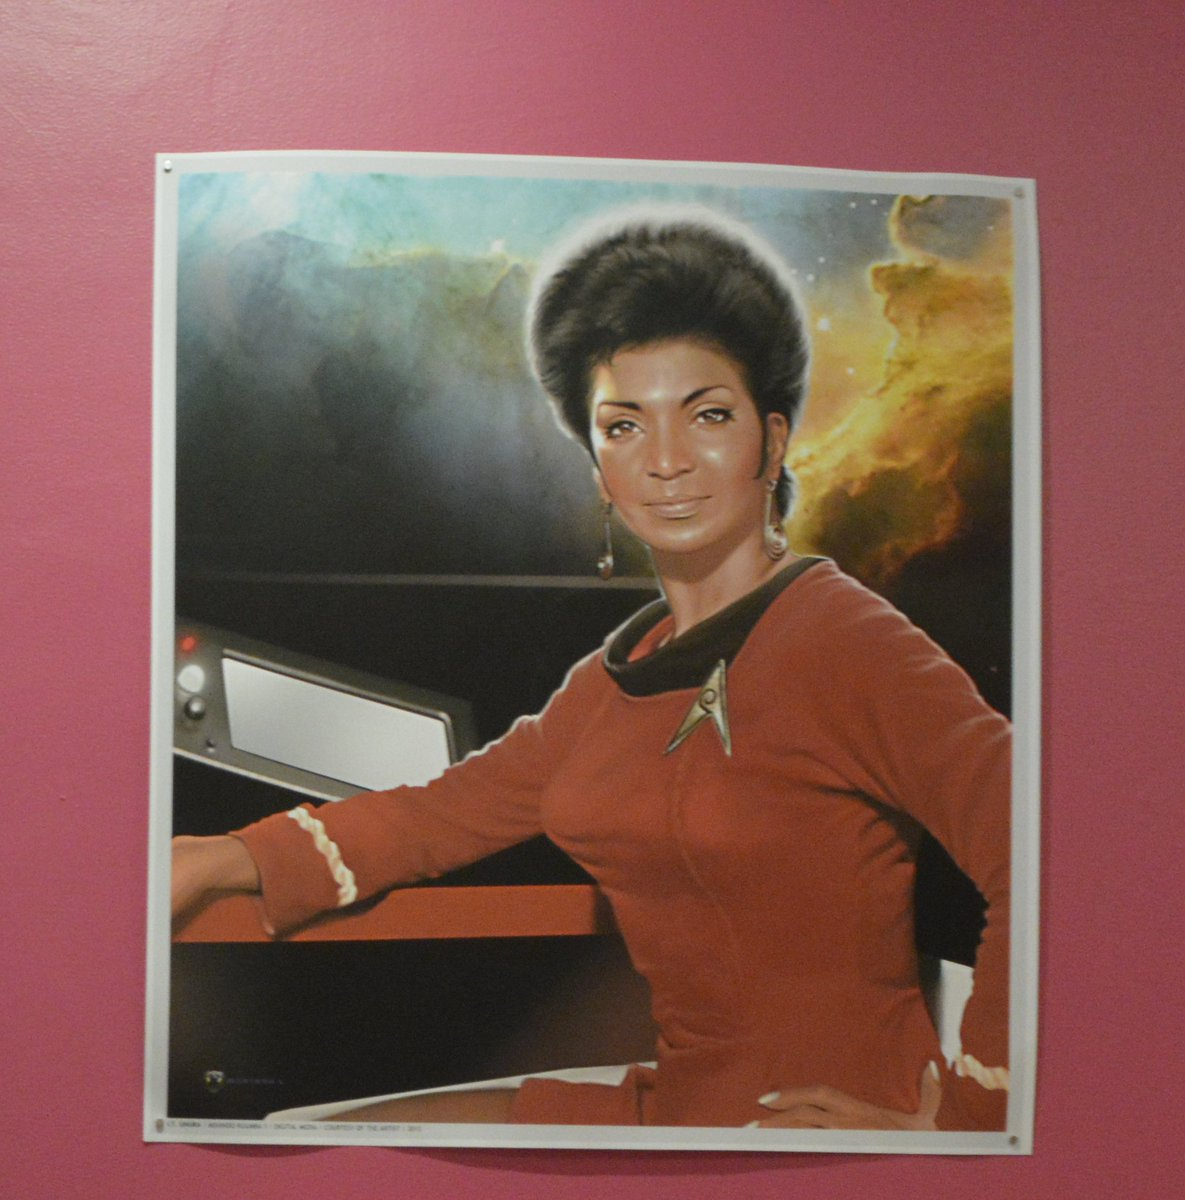 @djolder Thanks! We had a good talk. Told her about Nichelle Nichols, and how MLK convinced her to stay on the show. https://t.co/aNgfQHY220